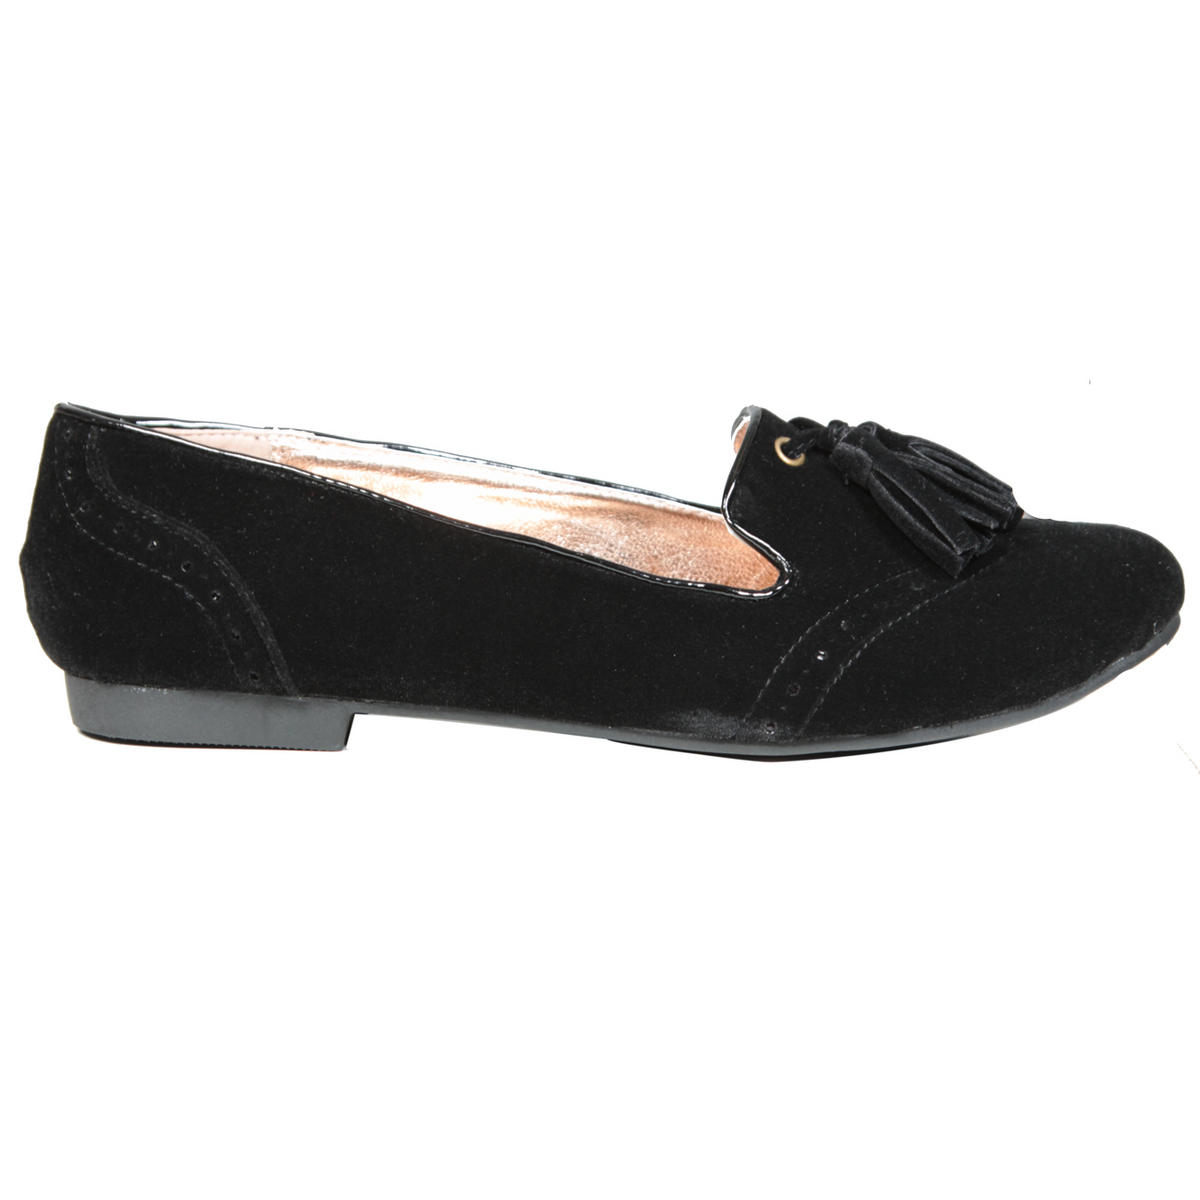 Black Tassel Flat Slipper Shoe Preview